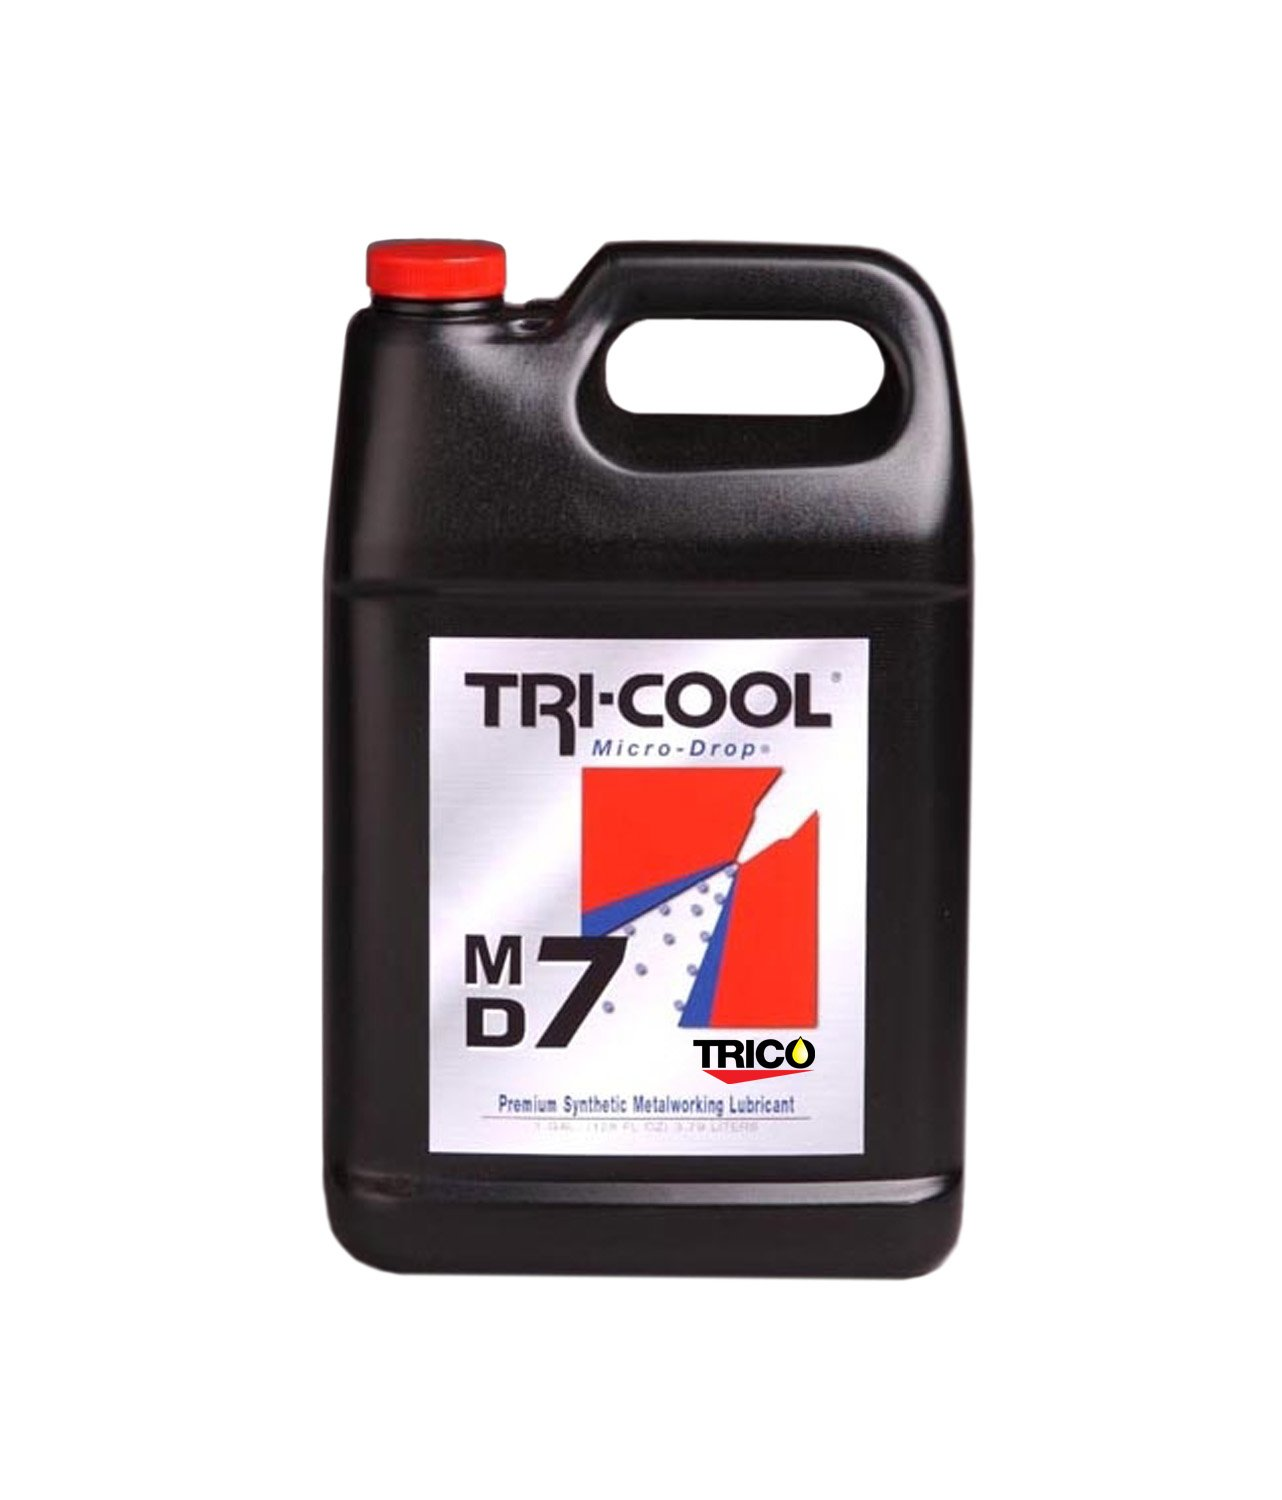 Trico MD-7 Micro-Drop Synthetic Lubricant, 1 Gallon Can, Pack of 1 by Trico